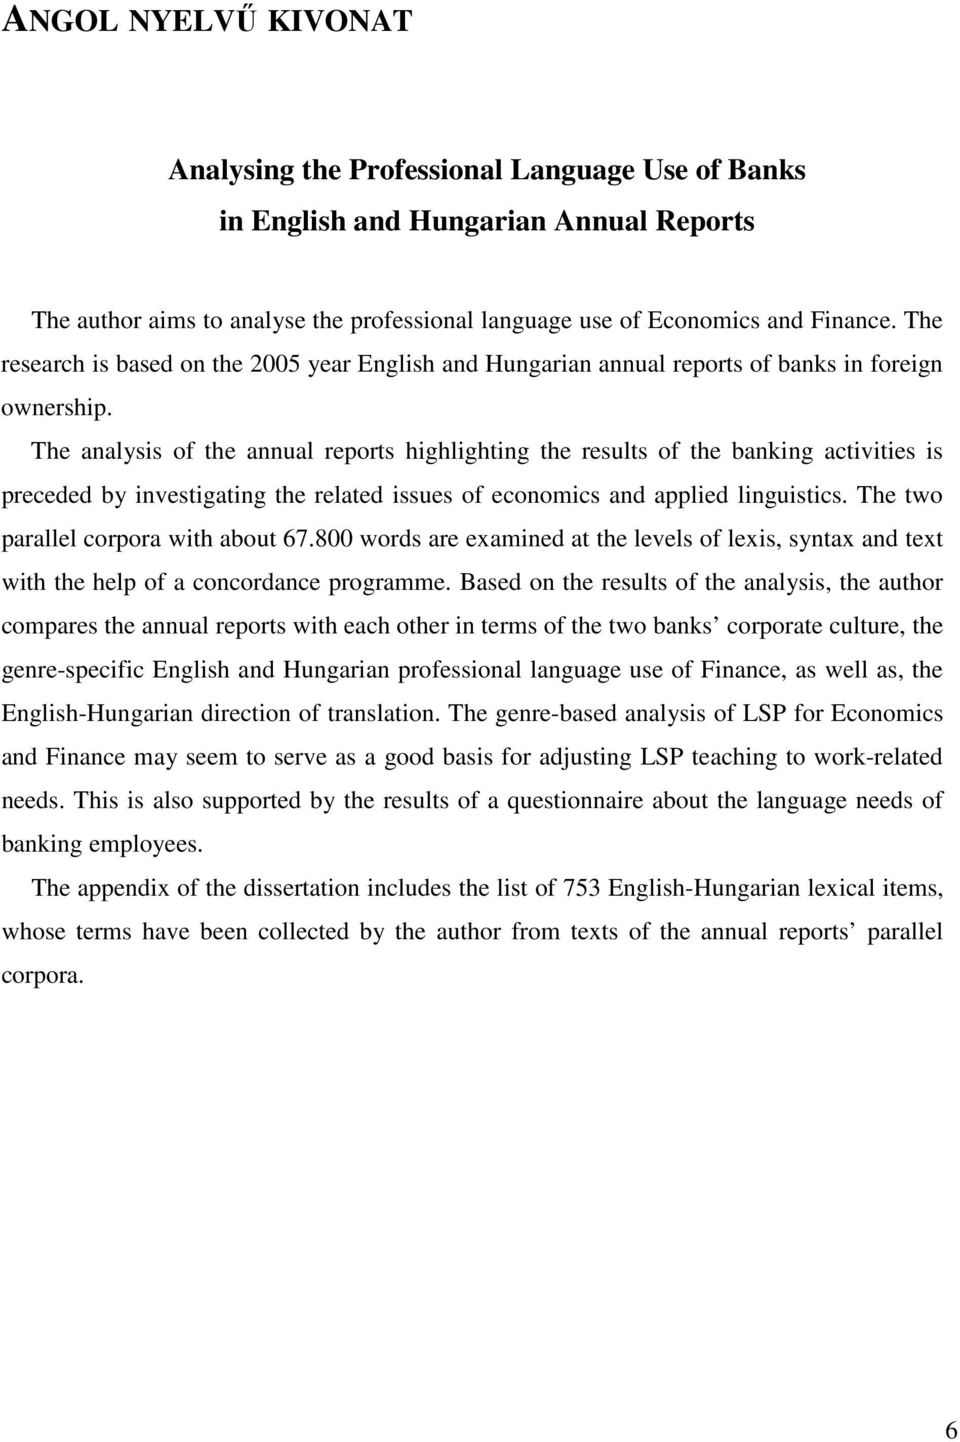 The analysis of the annual reports highlighting the results of the banking activities is preceded by investigating the related issues of economics and applied linguistics.